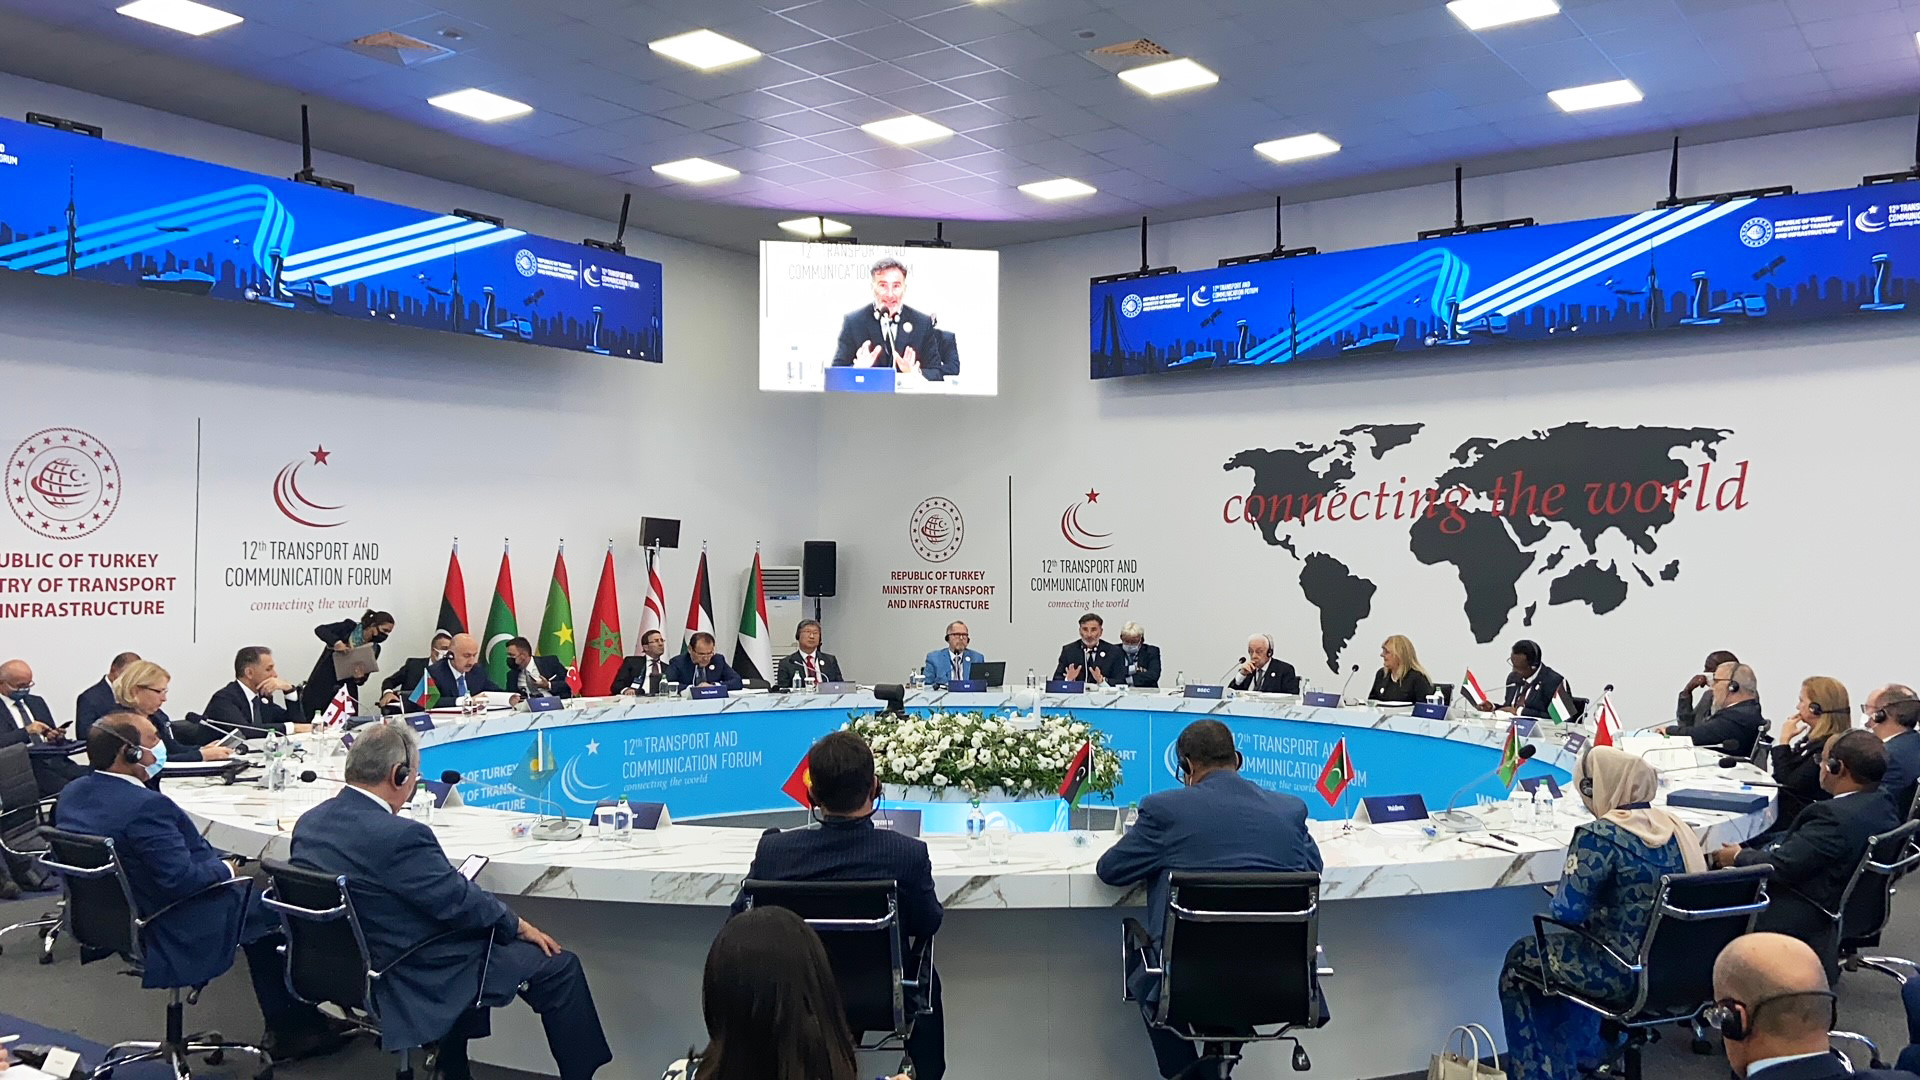 IRU Secretary General Umberto de Pretto has addressed 14 ministers of transport in a closed door round table session during the 12th Transport and Communication Forum, hosted by the Turkish Ministry of Transport